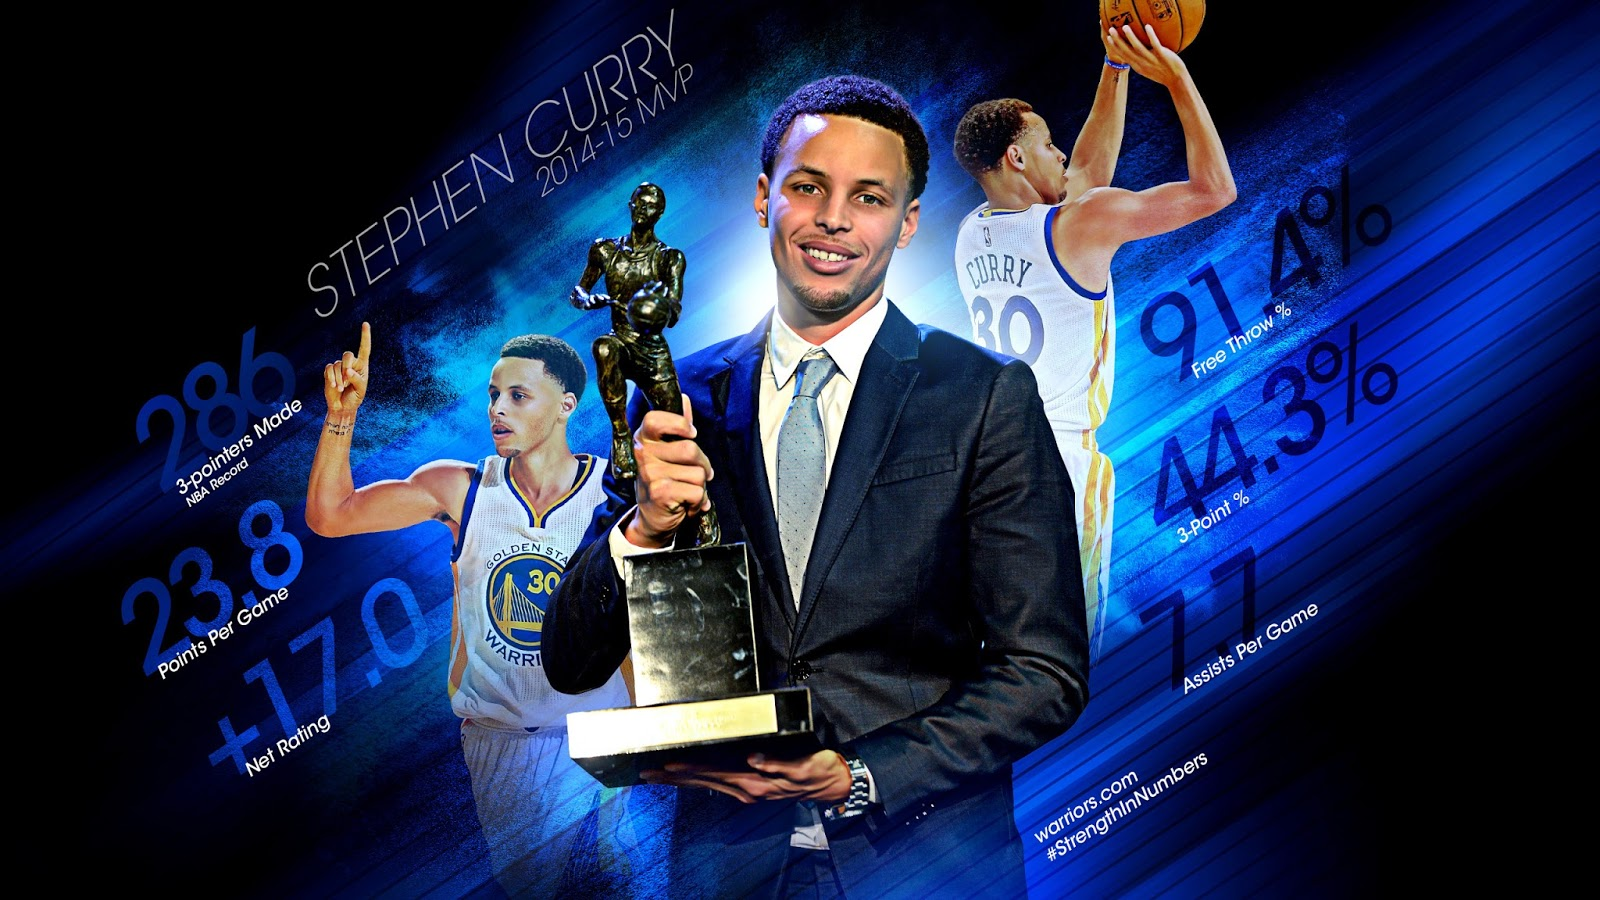 Latest Stephen Curry Wallpaper HD